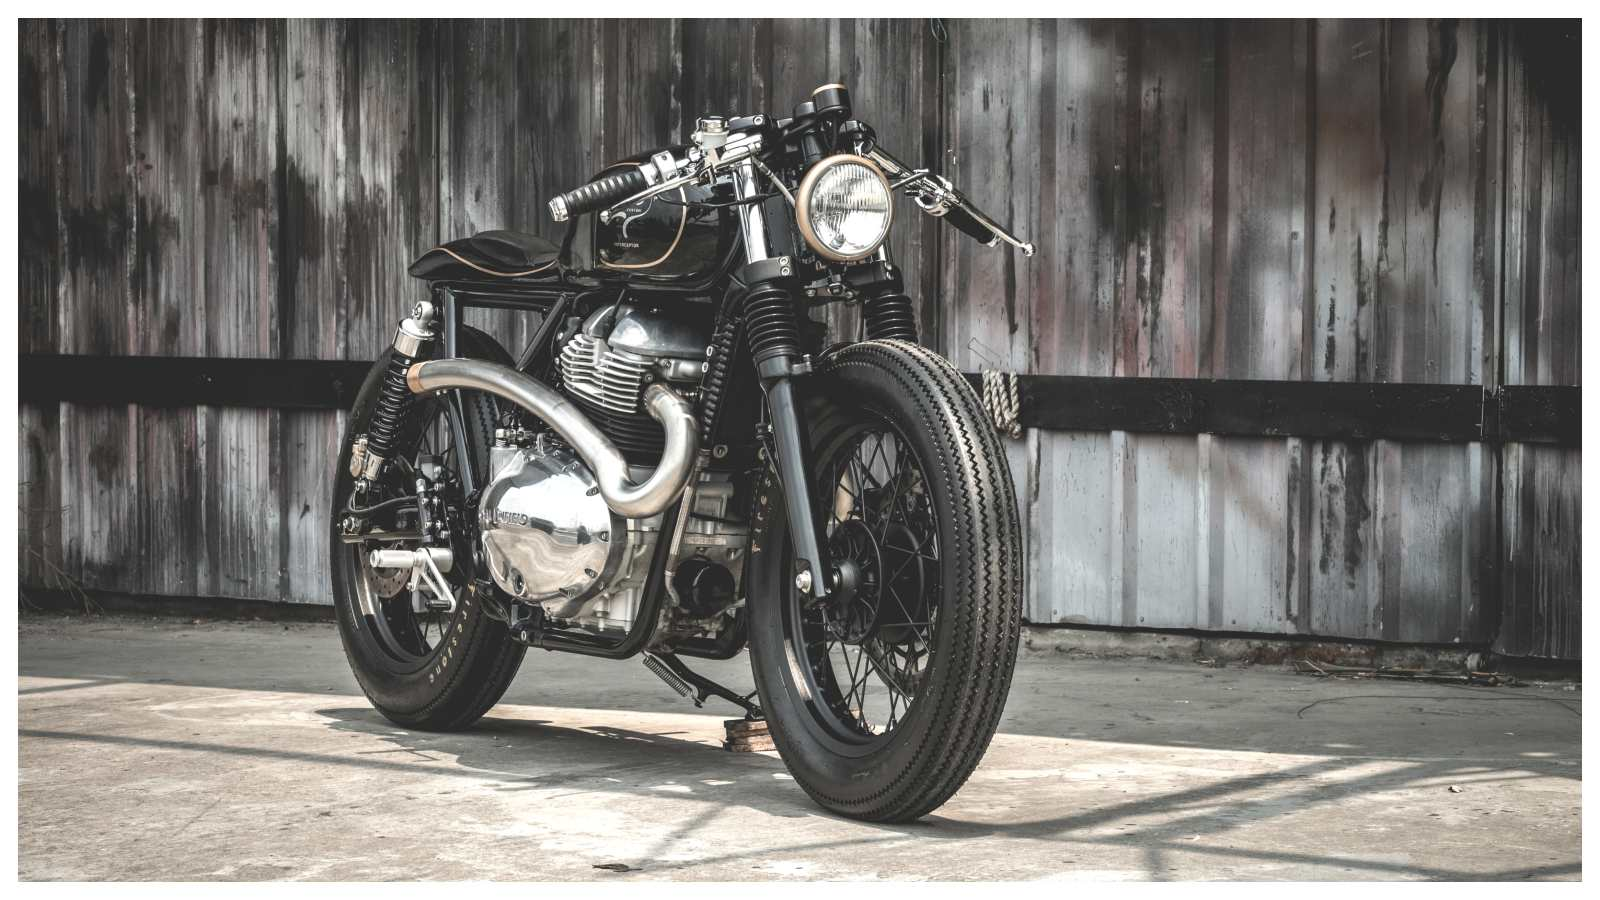 Zeus Customs Makes The Royal Enfield Interceptor 650 Travel Back In